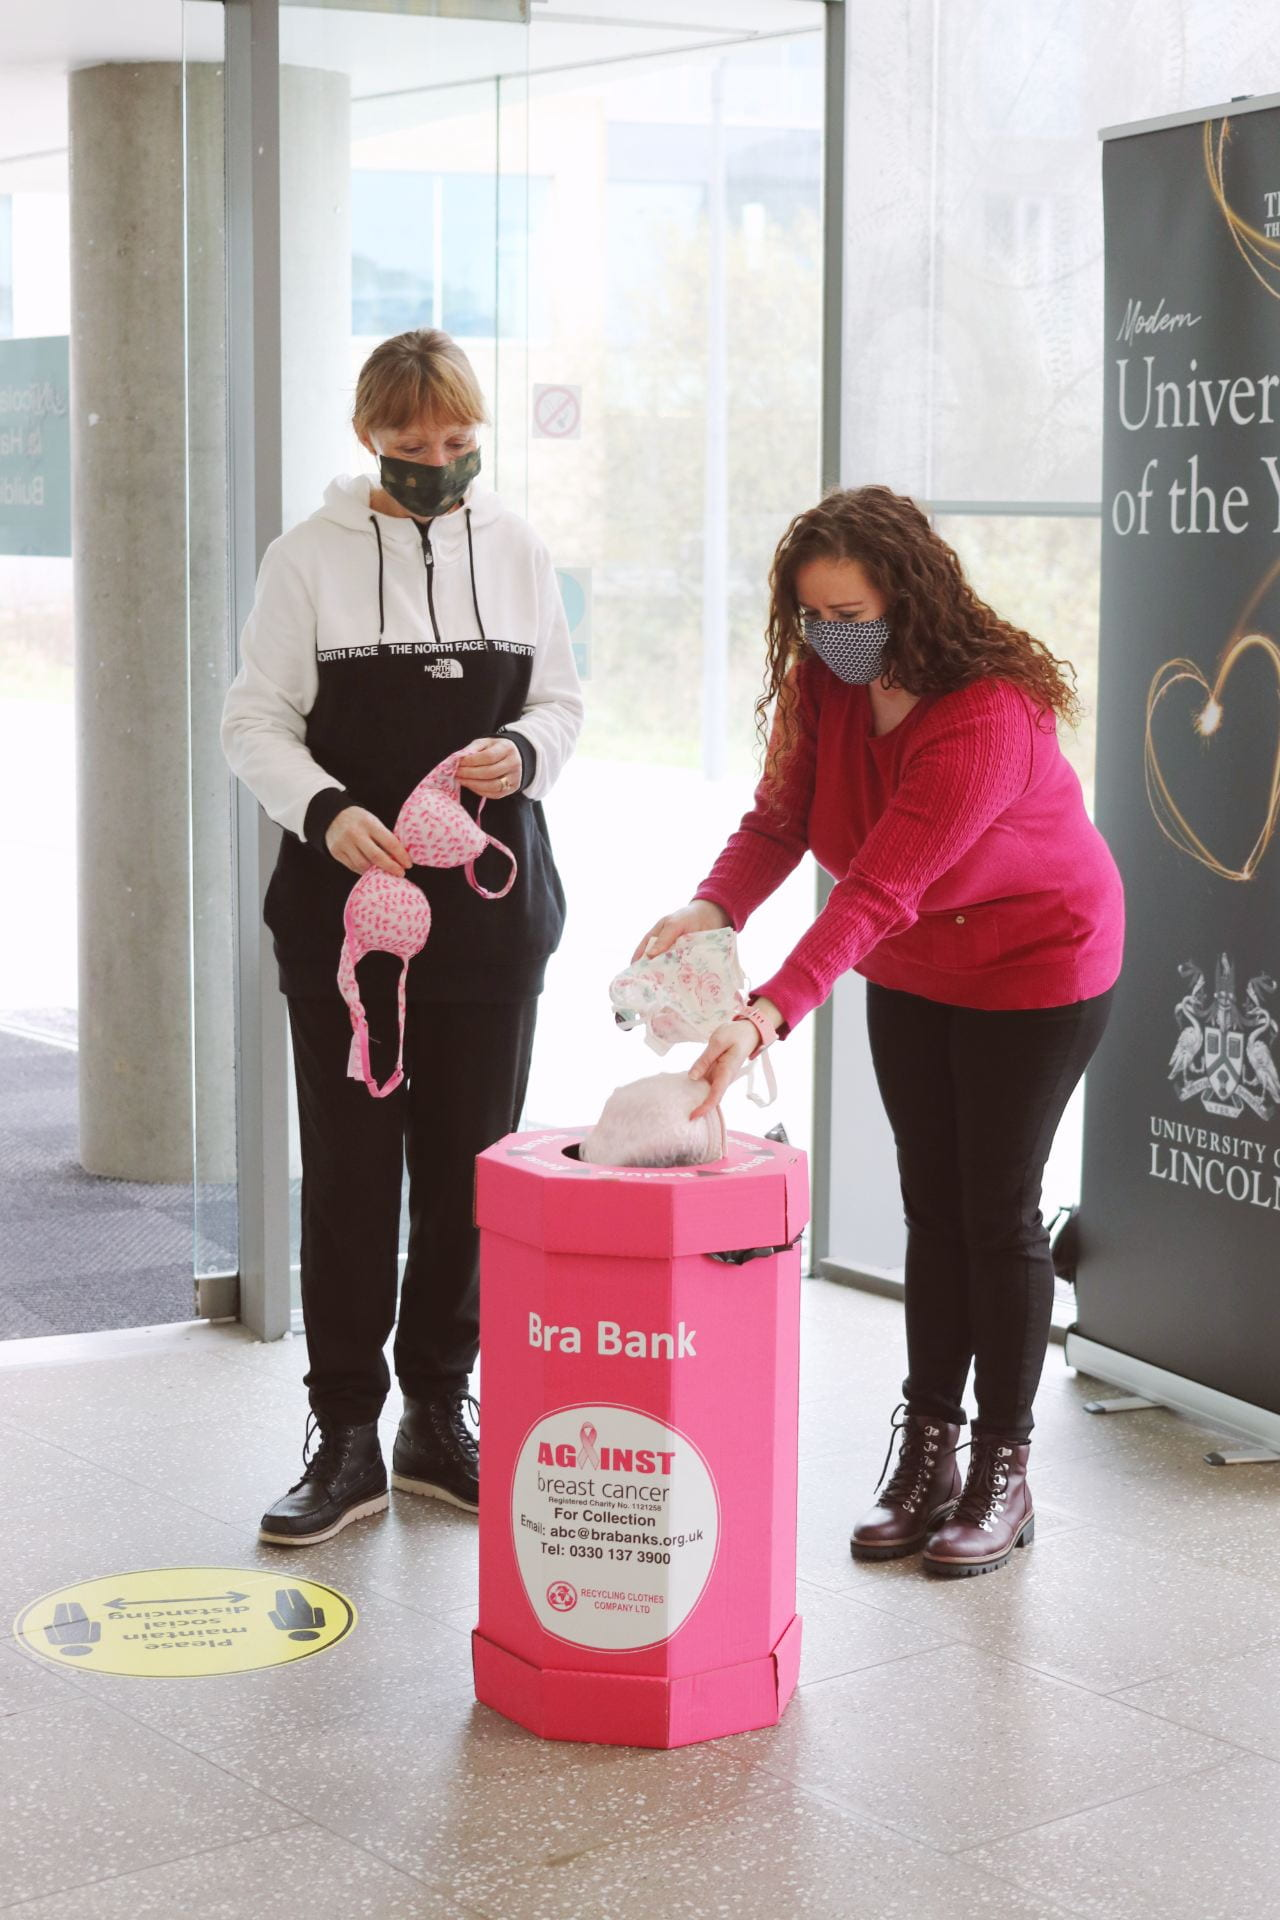 Image of two people putting bras into a pink recycling bin